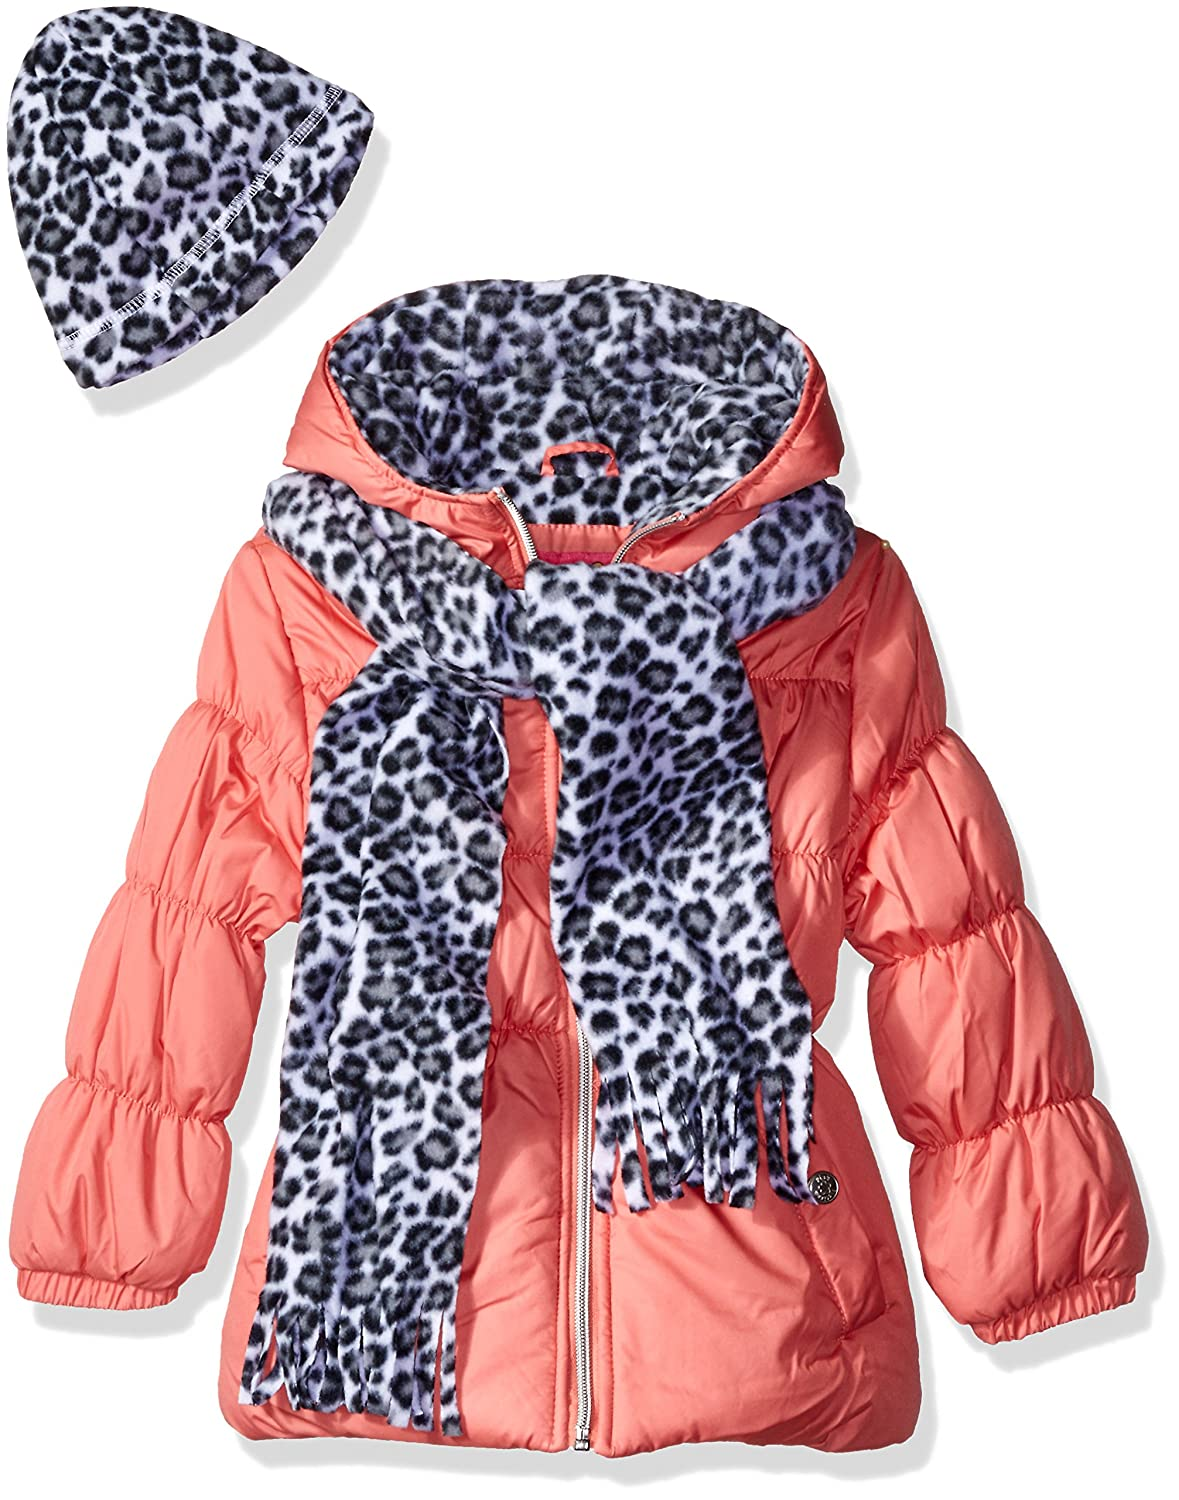 Pink Platinum Girls Puffer Jacket with Cheetah Lining and Accessories 74330